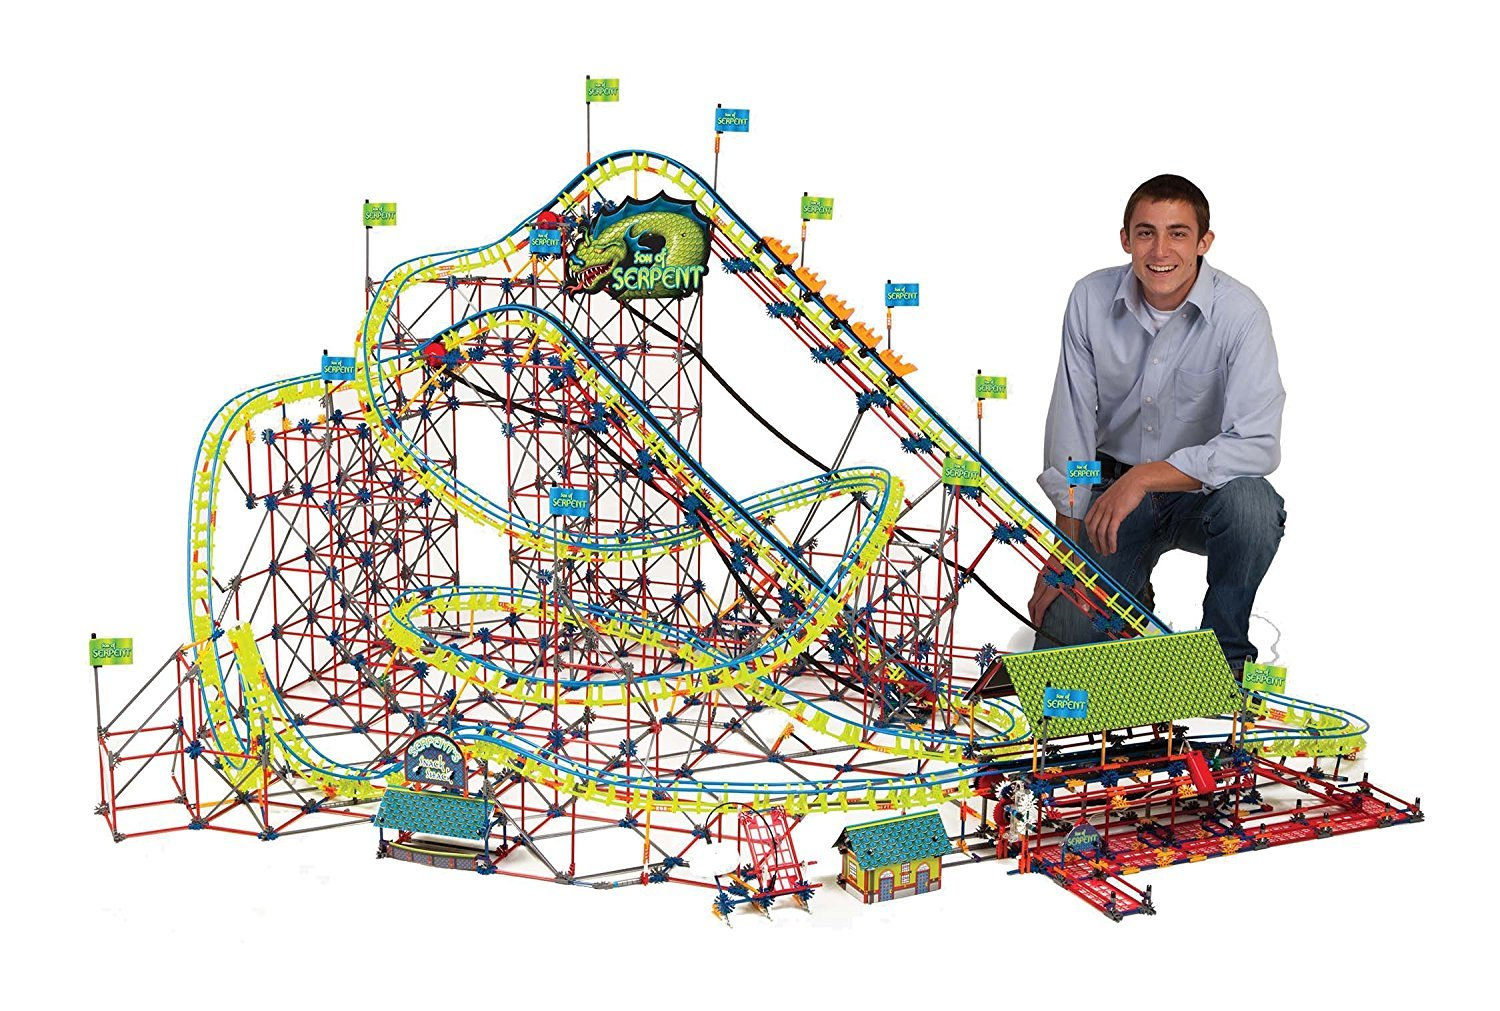 K'NEX Son of Serpent Roller Coaster image